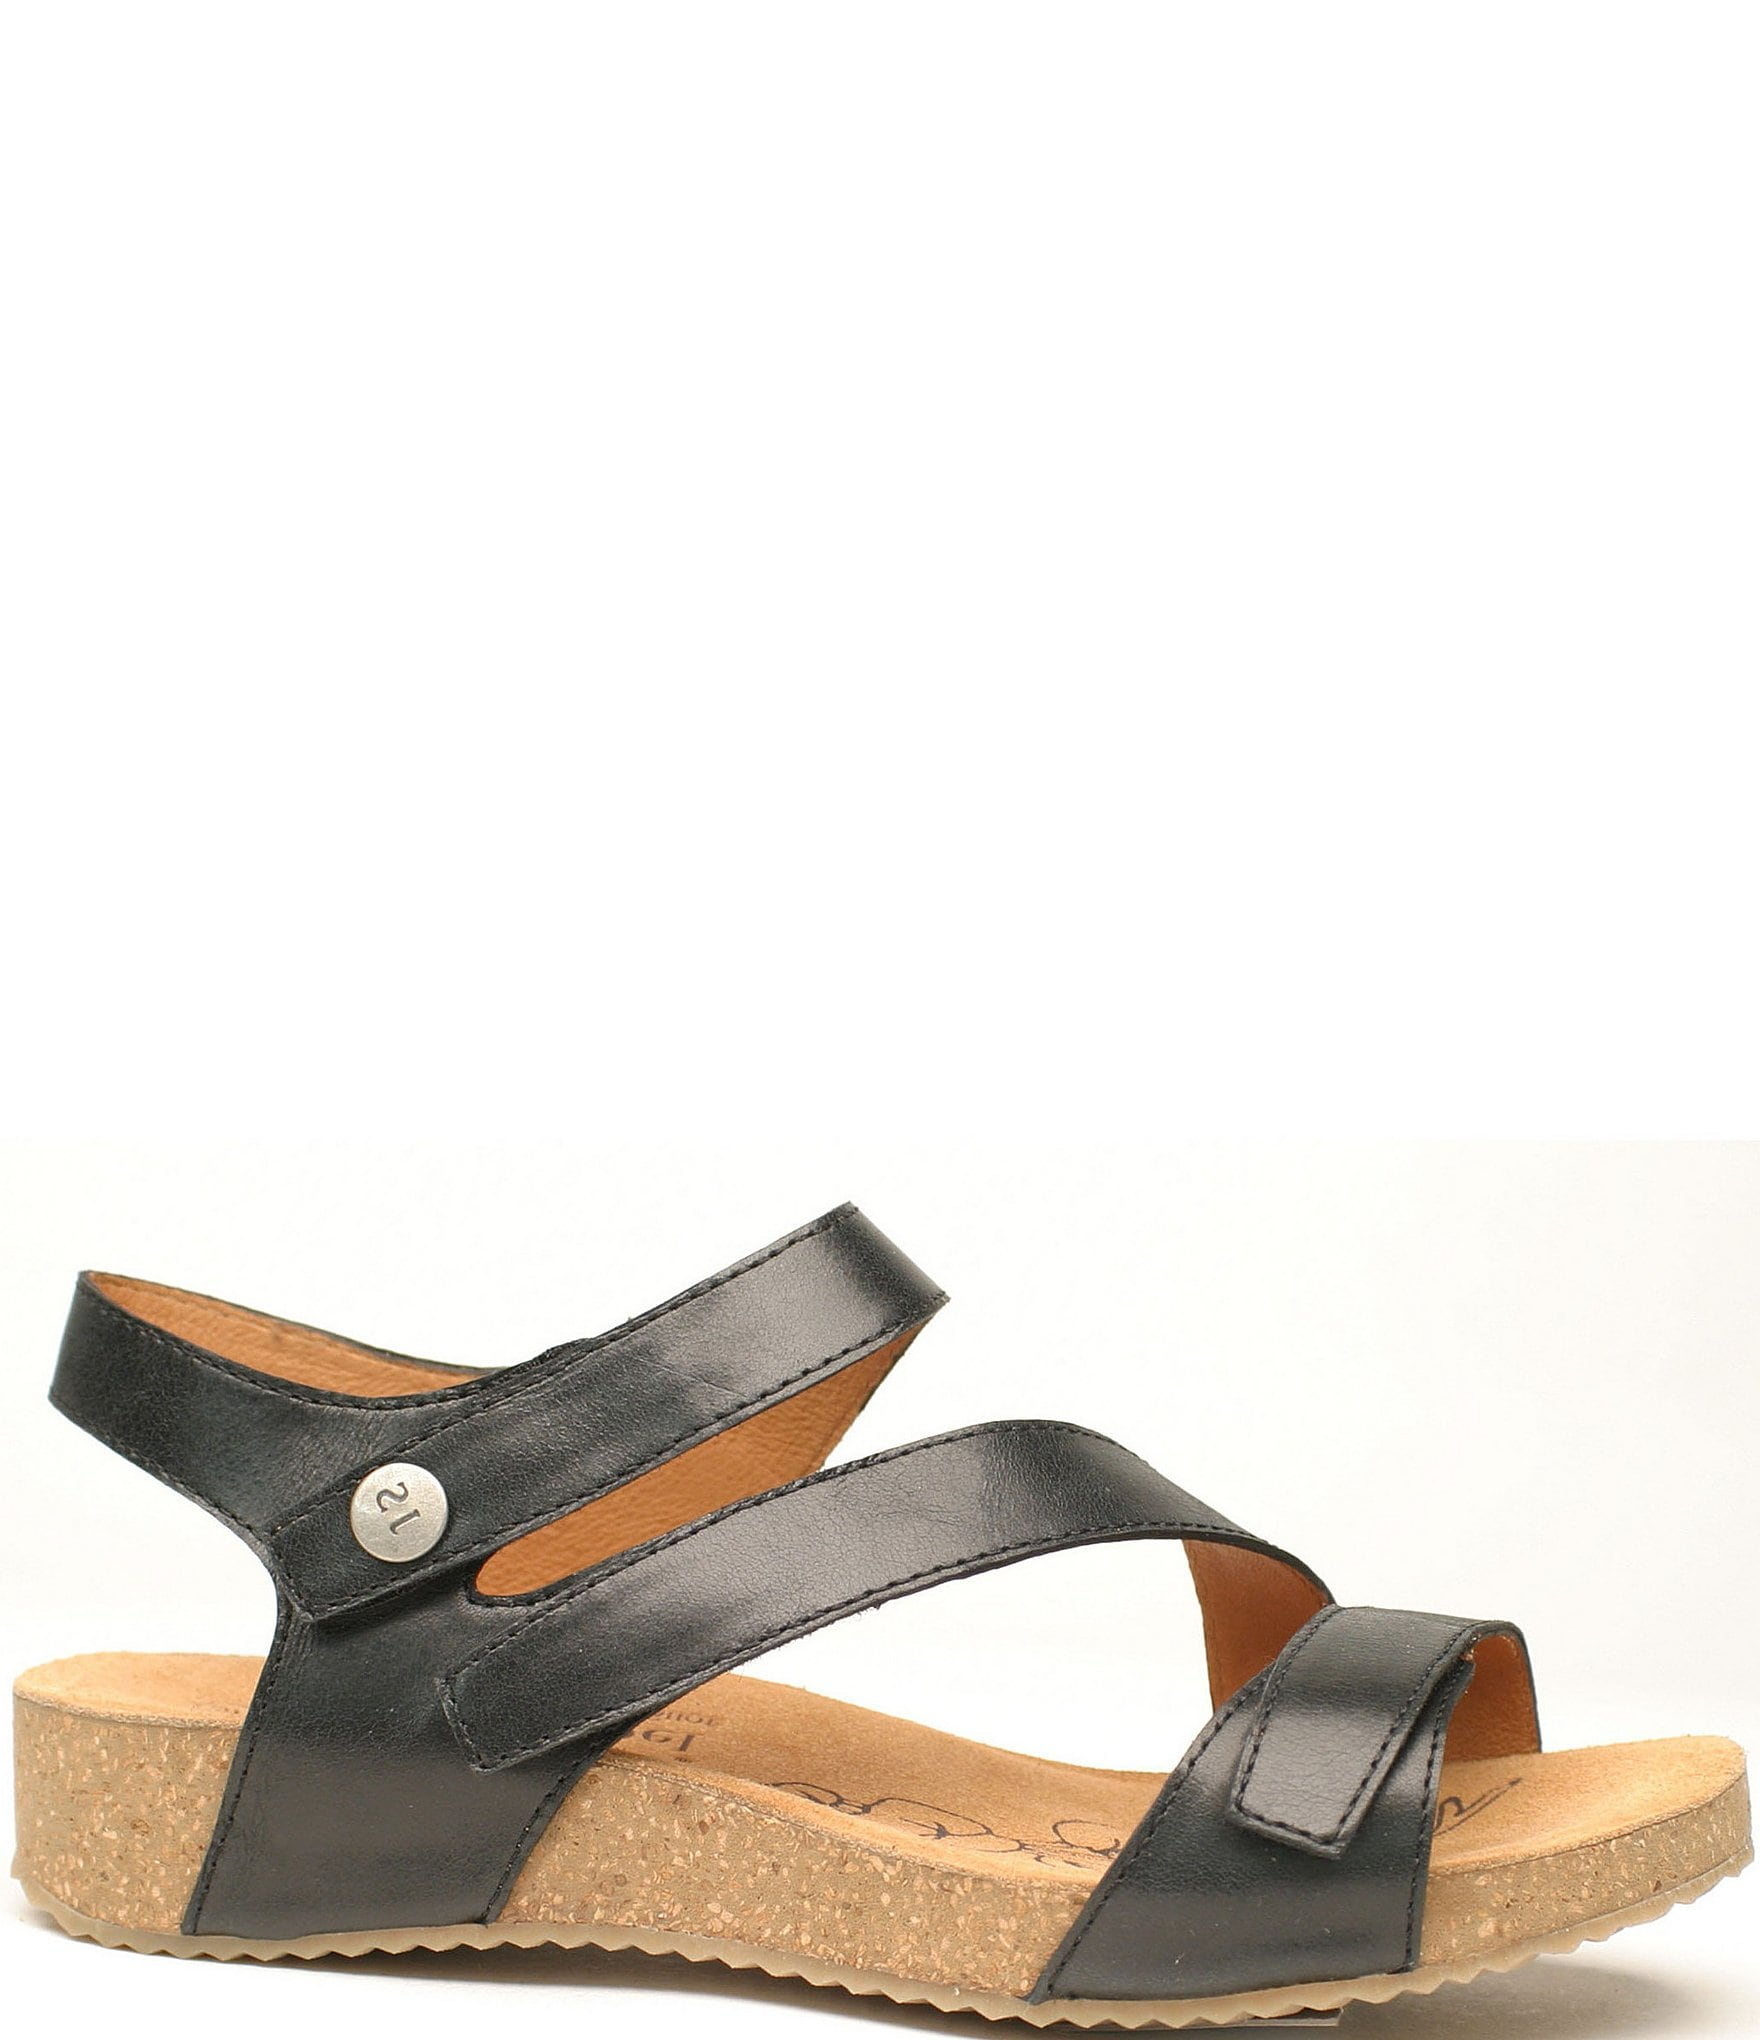 84c999f0691c Josef Seibel Tonga 25 Leather Sandals